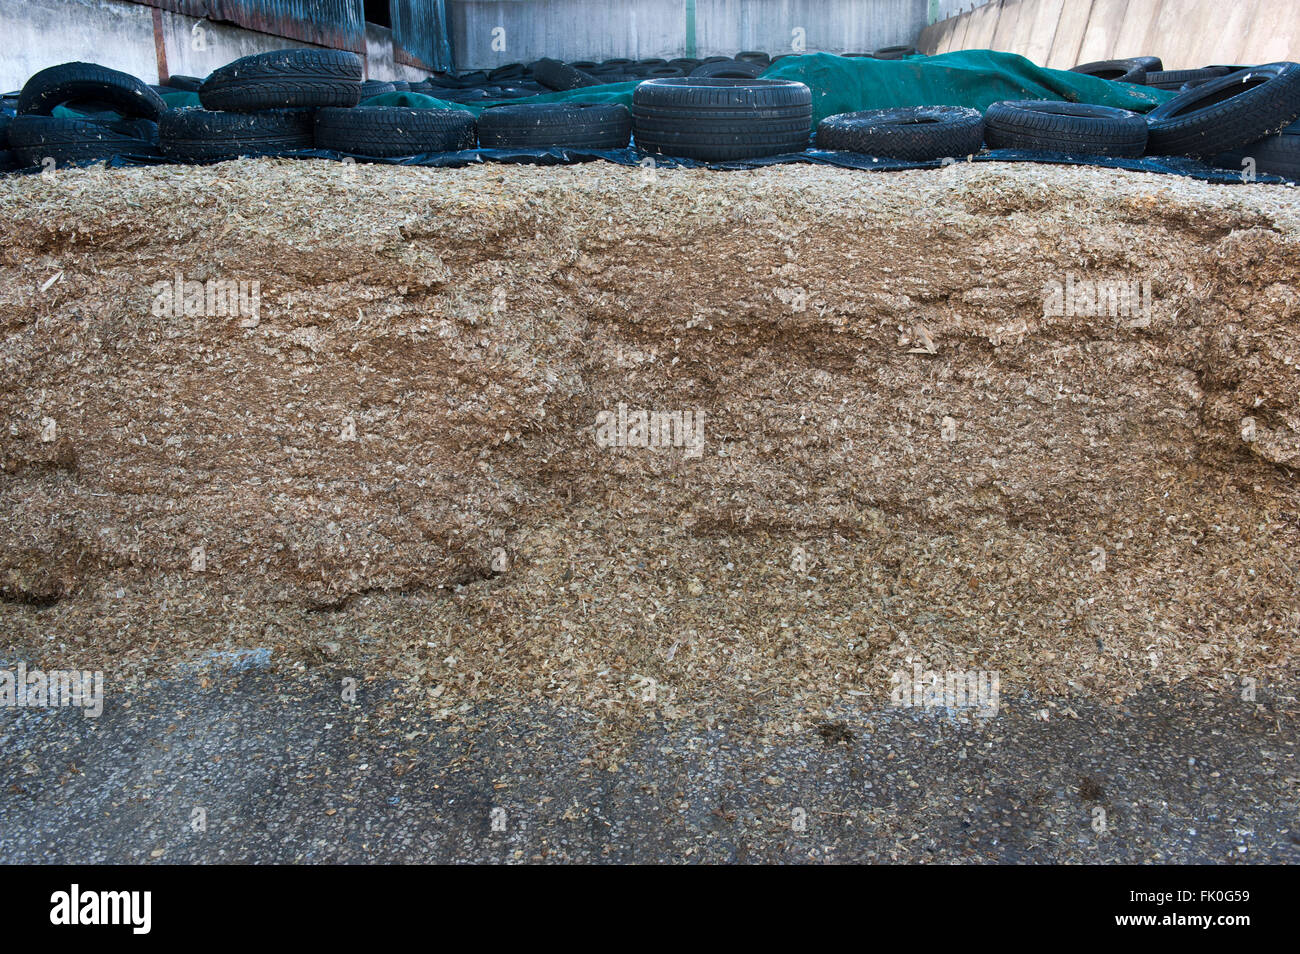 Clamp of maize silage, to fed to dairy cattle, Cumbria, UK. - Stock Image